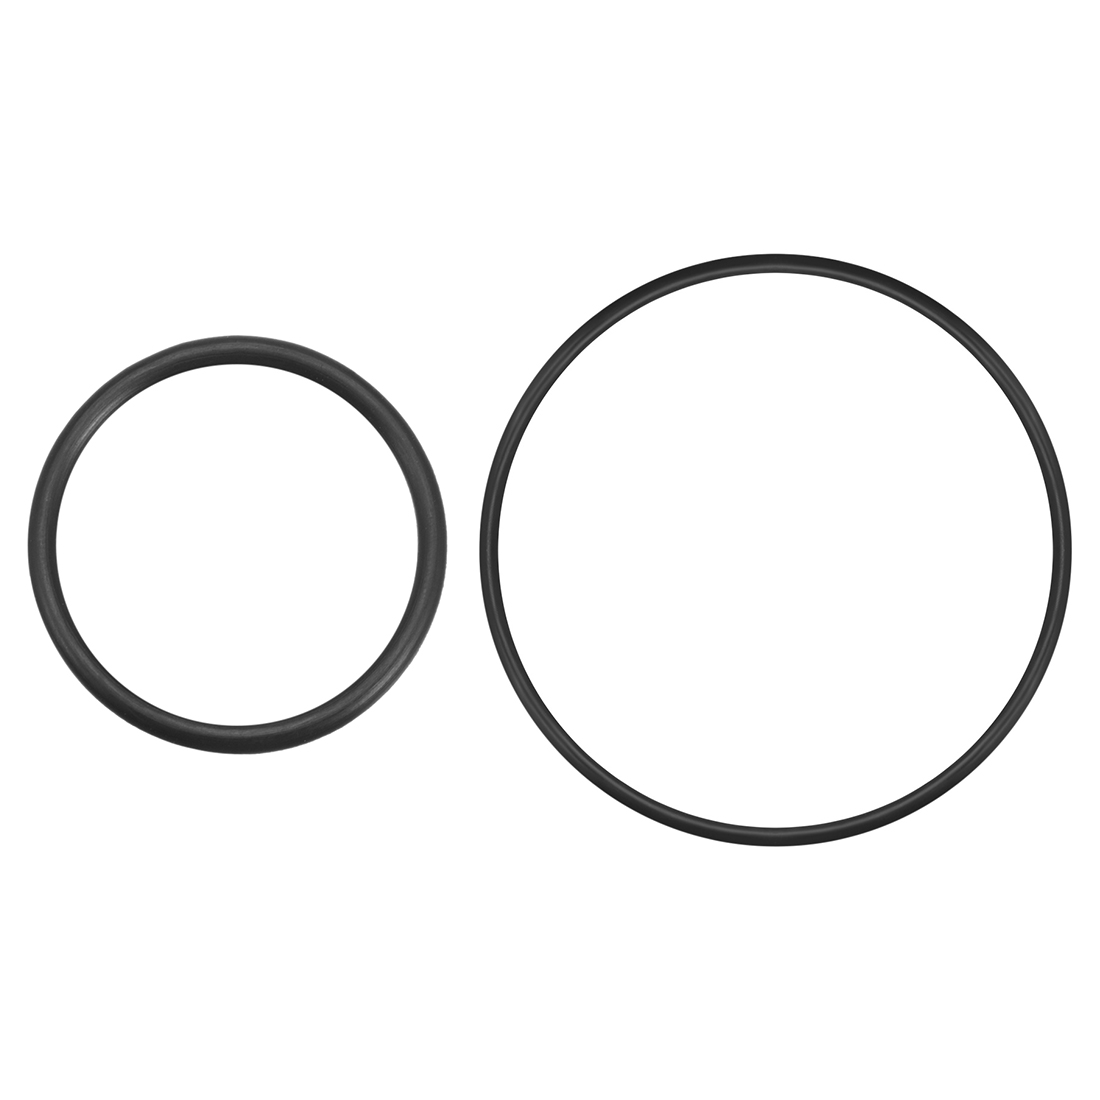 6 Pipe Size Pressure Class 150# PTFE Sterling Seal CFF7530.600.031.150 7530 Full Face Gasket 1//32 Thick Virgin Teflon Pack of 10 White